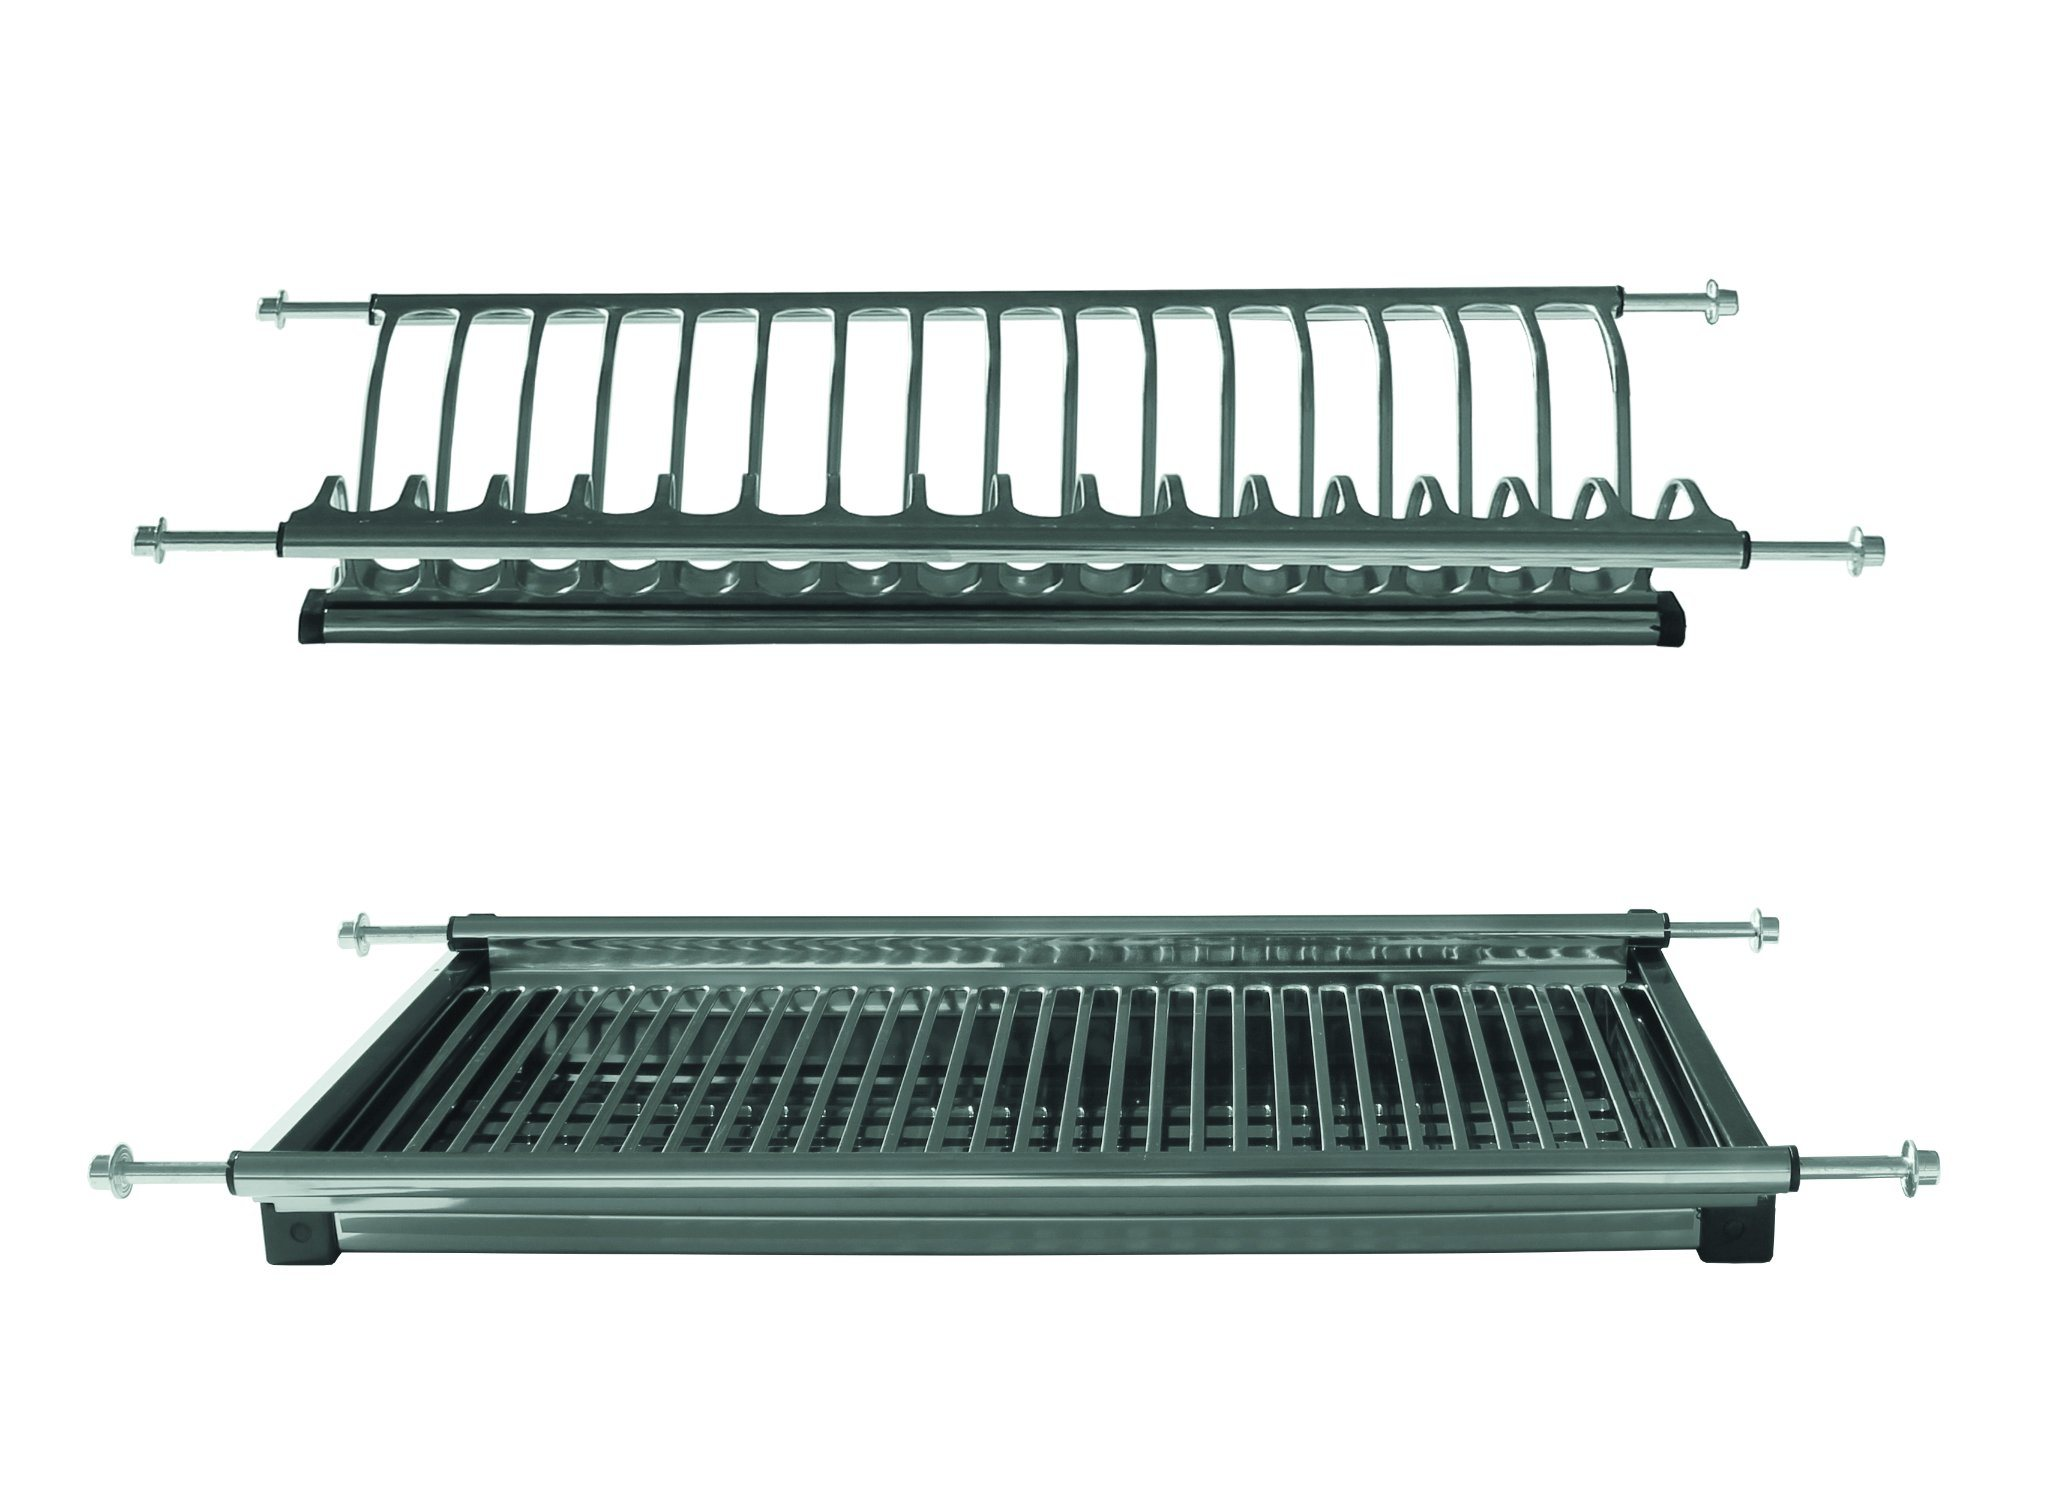 China Ss201 Dish Racks Drainer Kitchen Cabinet Stainless Steel Ss304 China Dish Rack And Ss201 Price